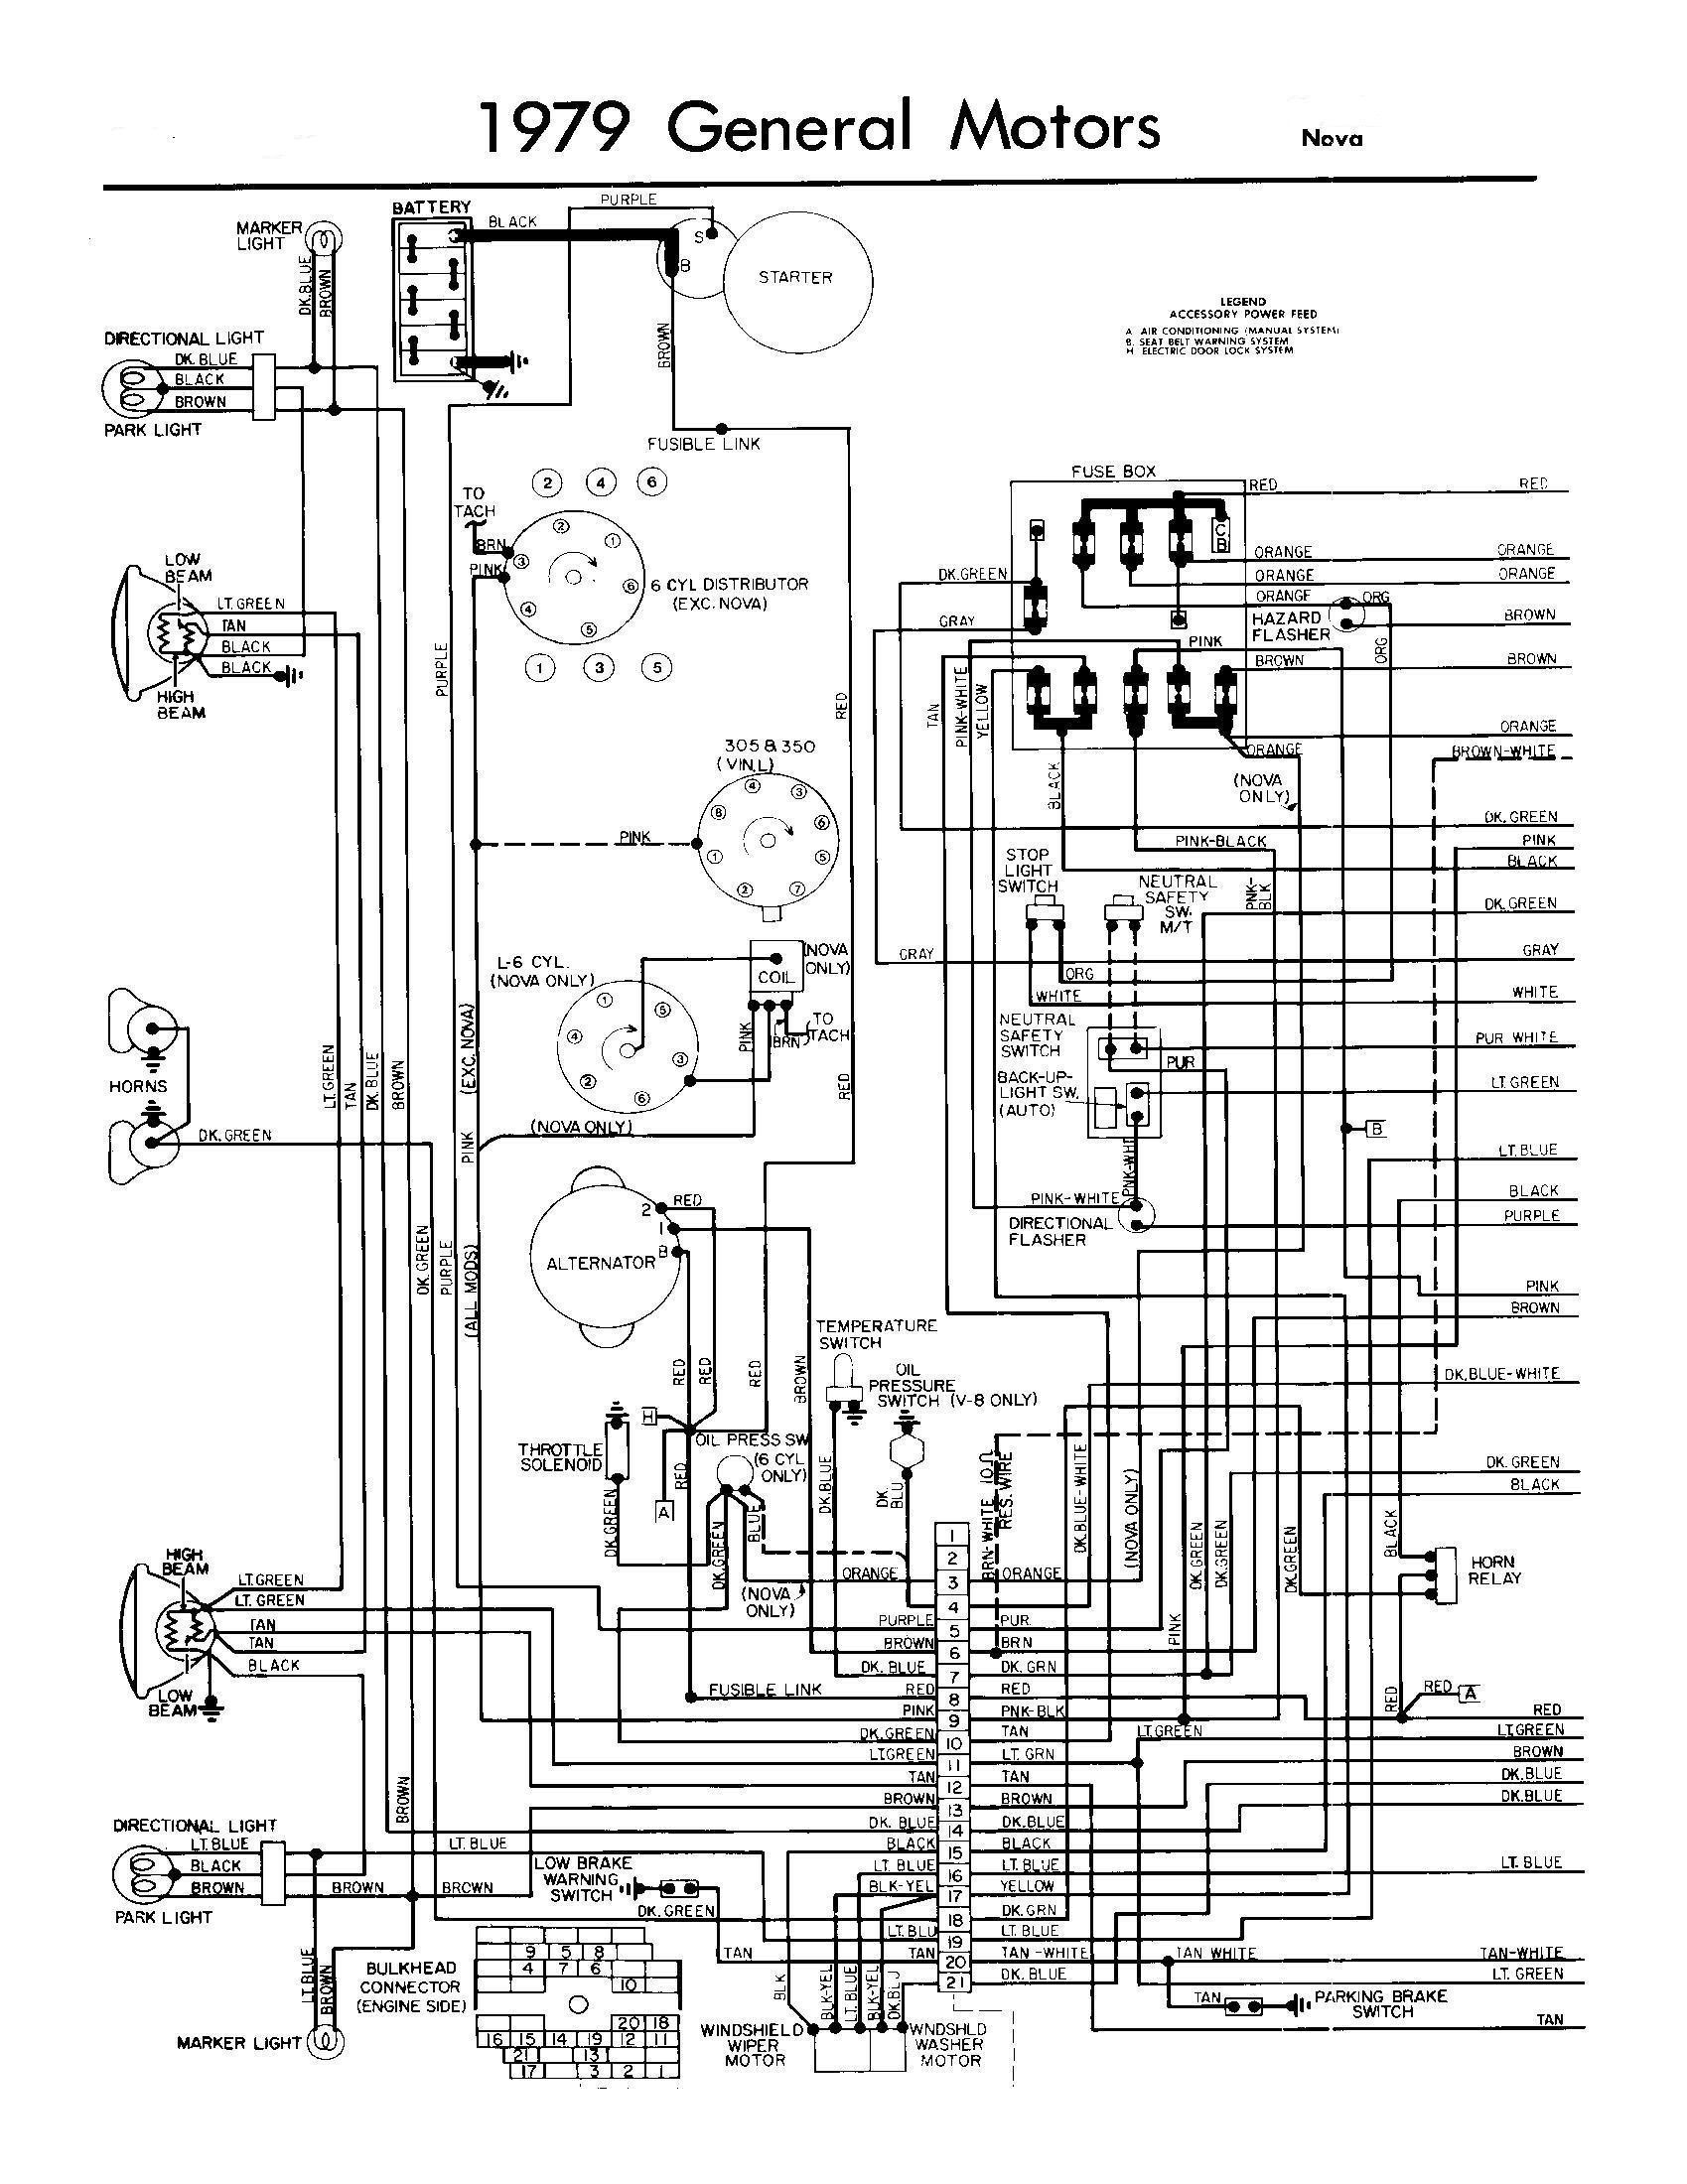 5 7 vortec chevy truck alternator wiring diagram caterpillar 3208 marine engine wiring diagram gallery mack truck alternator wiring diagram